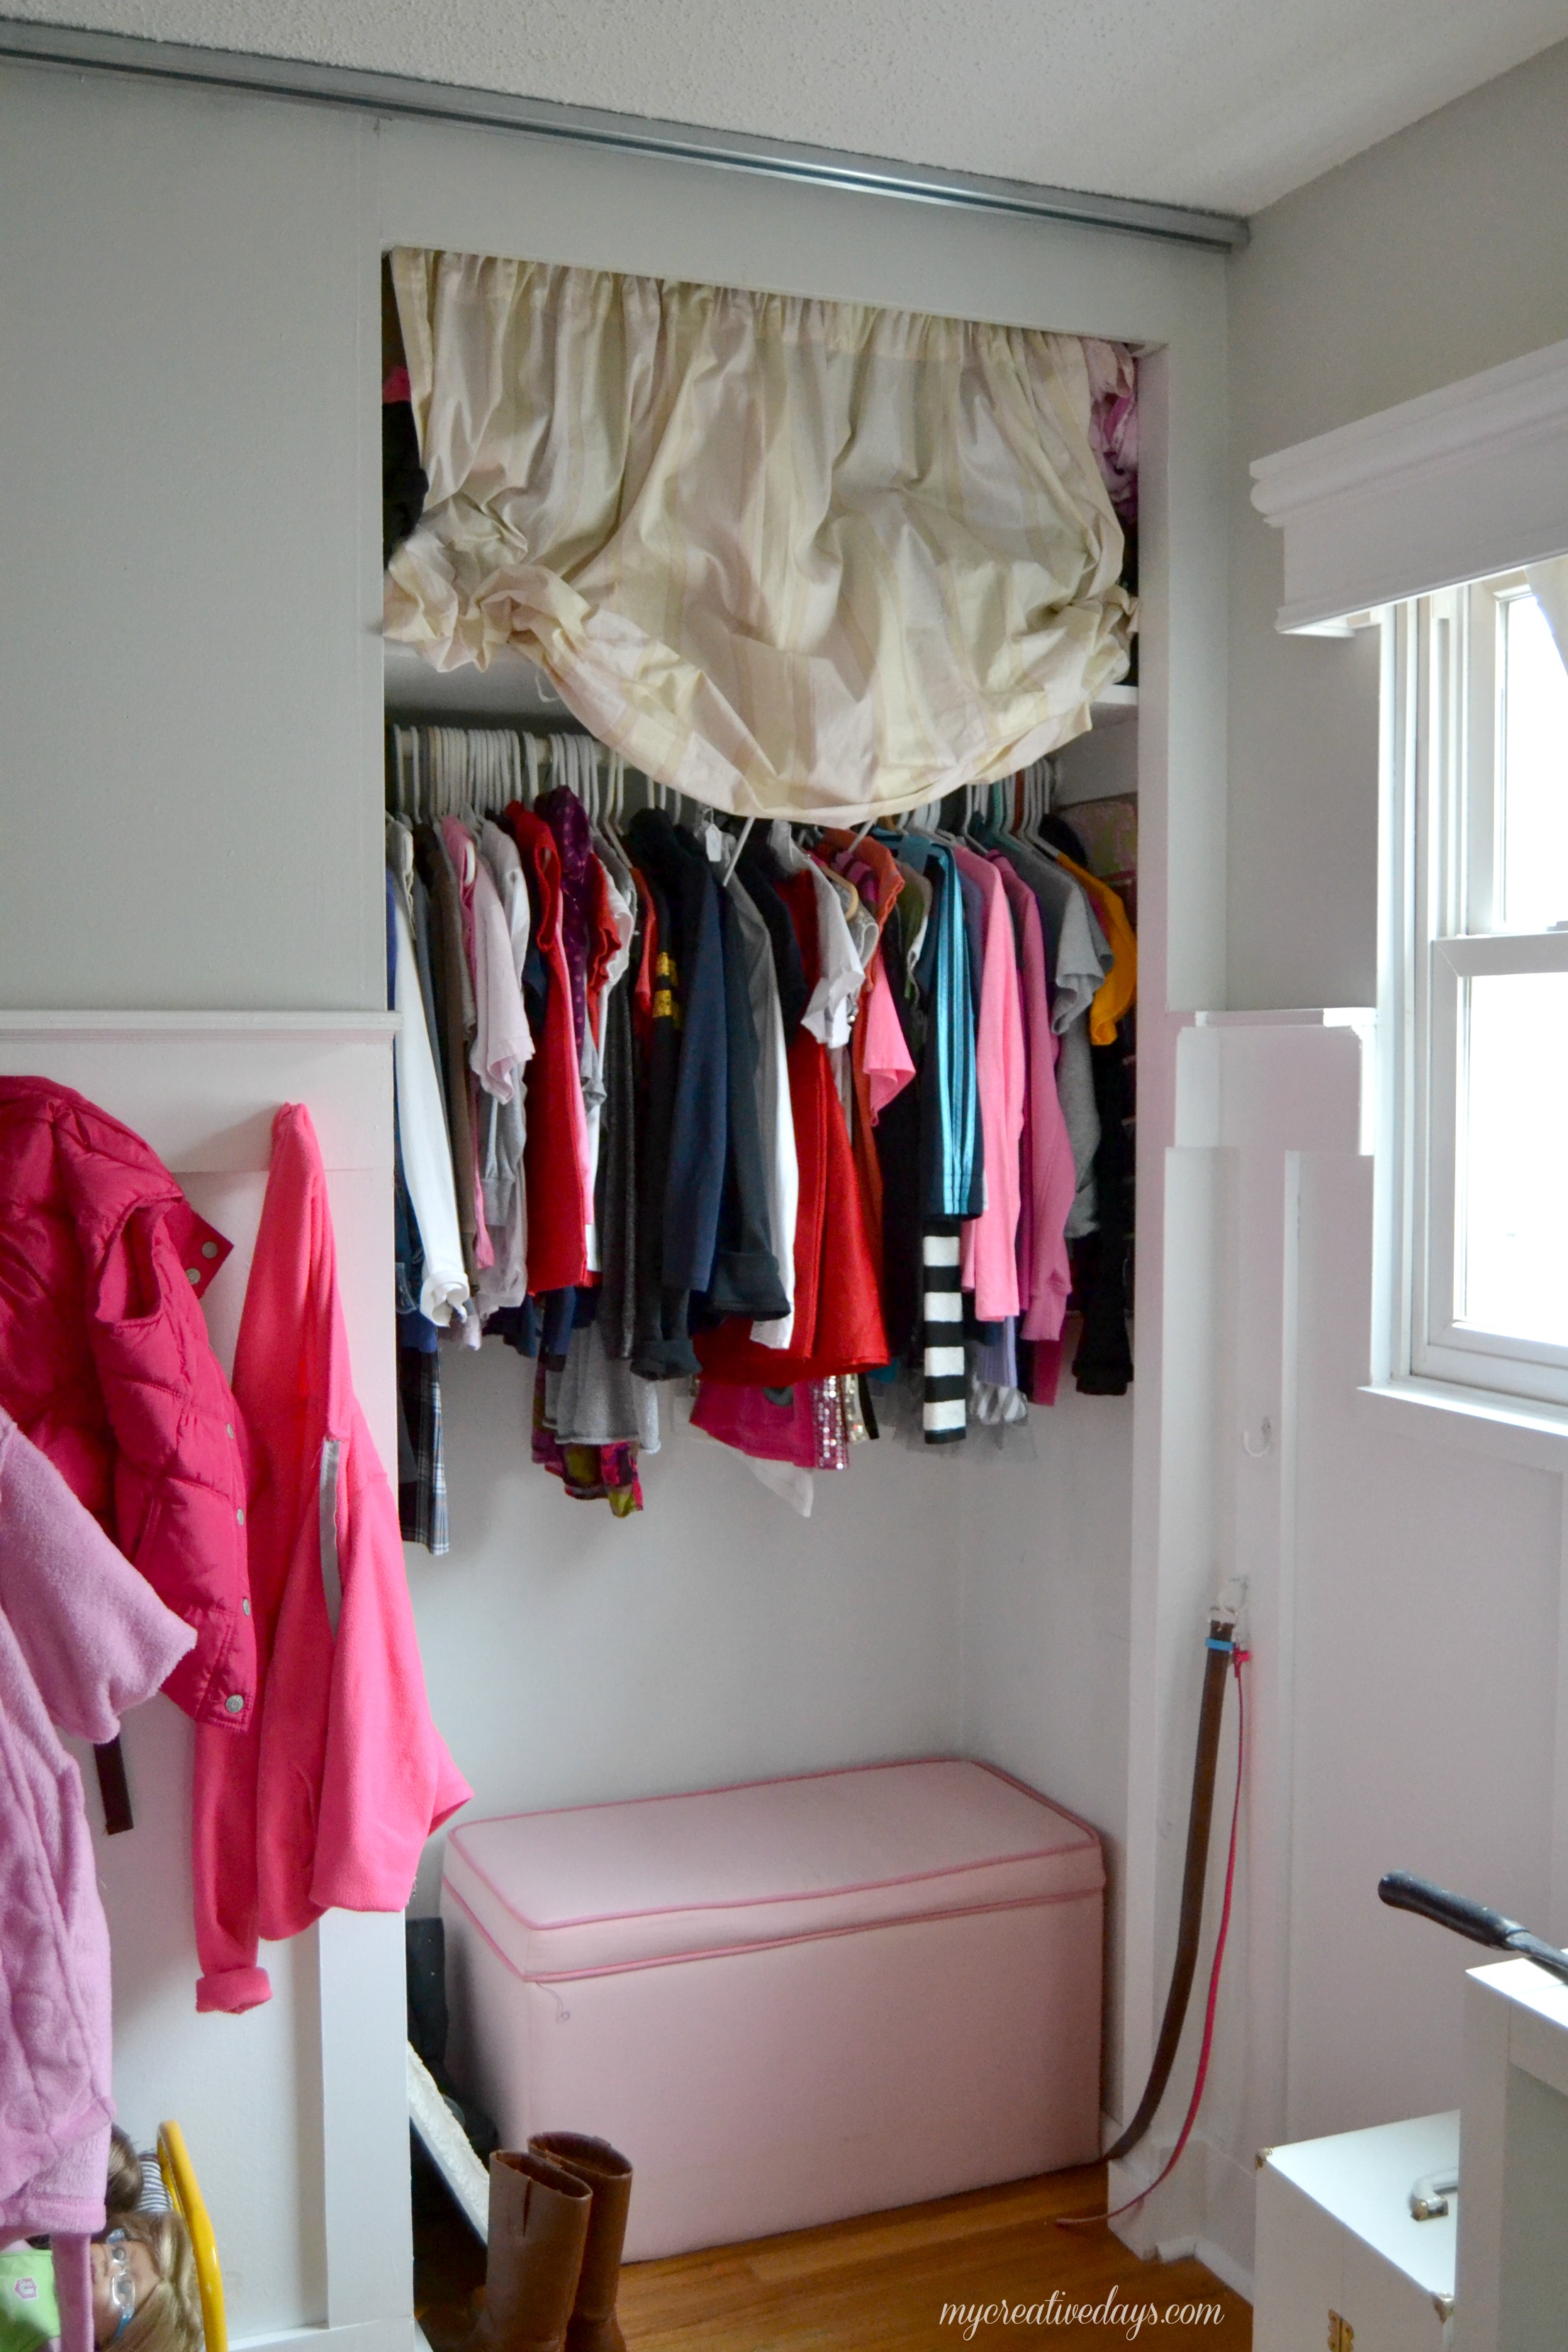 Diy sliding closet doors homesfeed for Closet door ideas diy